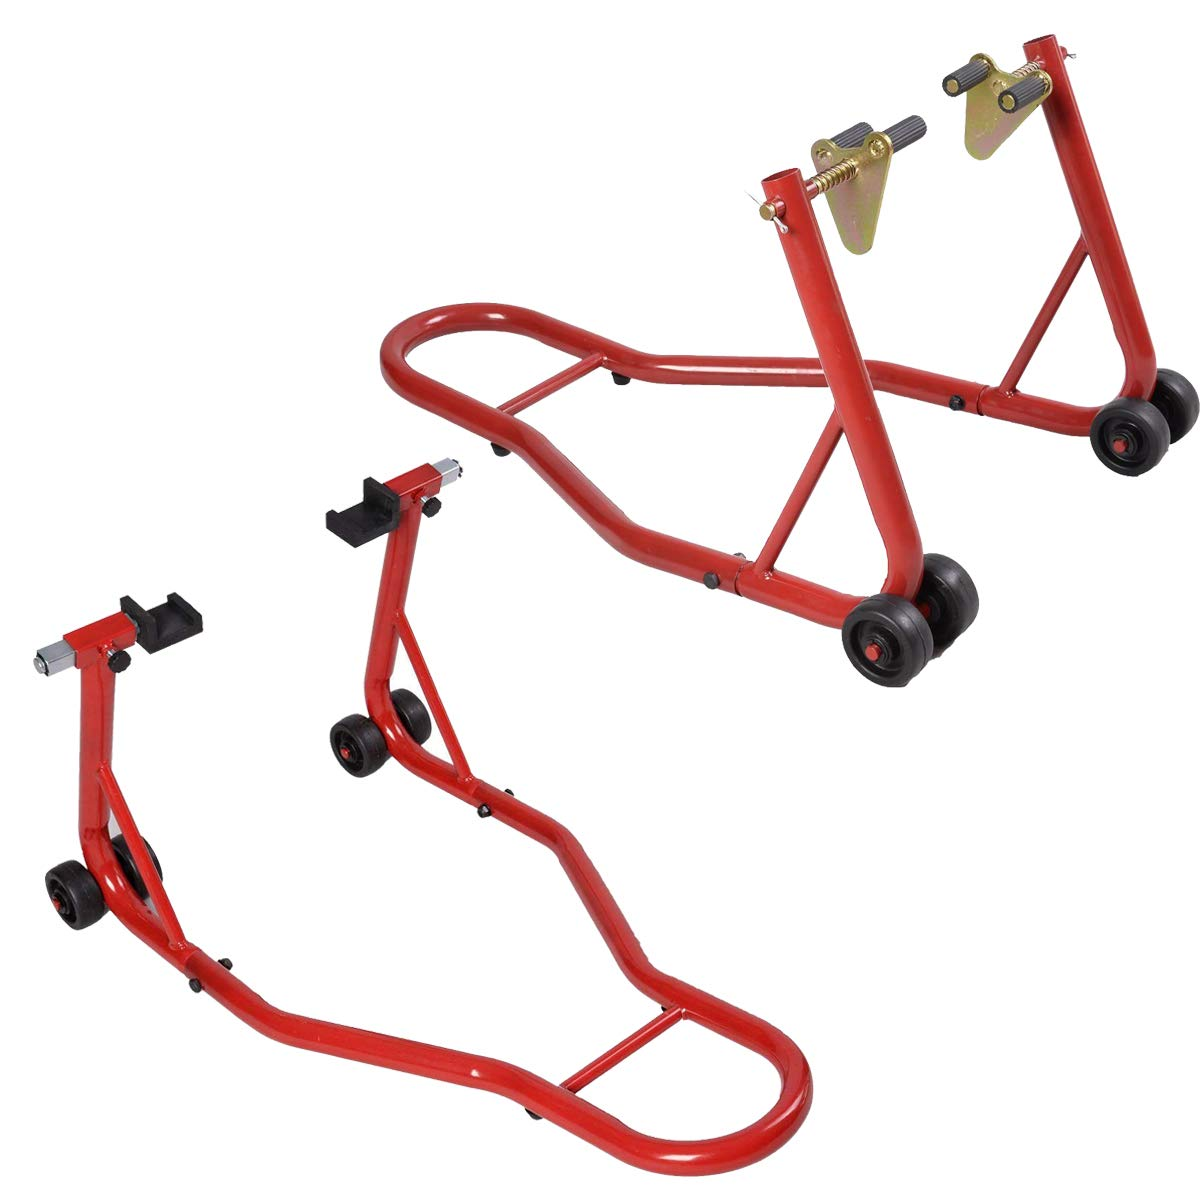 Goplus Motorcycle Stand Front Wheel Lift Fork Swingarm Stands Paddock Stands Forklift Auto Bike Shop Red, Front Stand